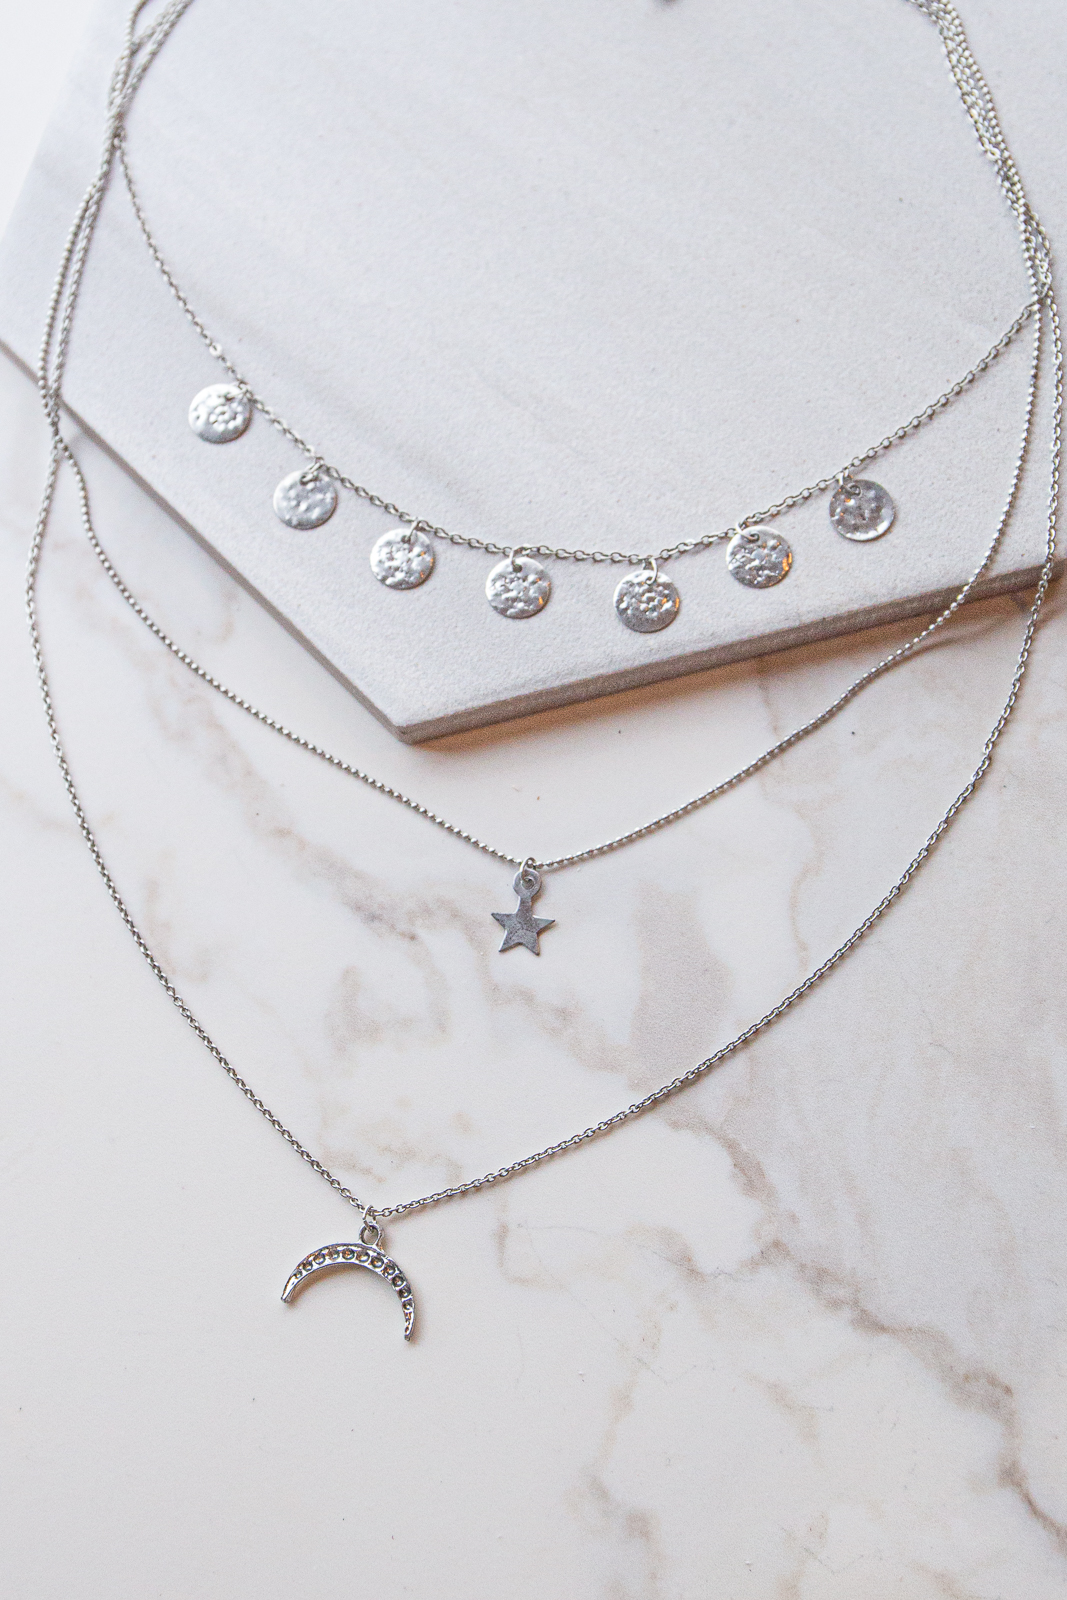 Antique Silver Layered Moon and Star Charm Necklace